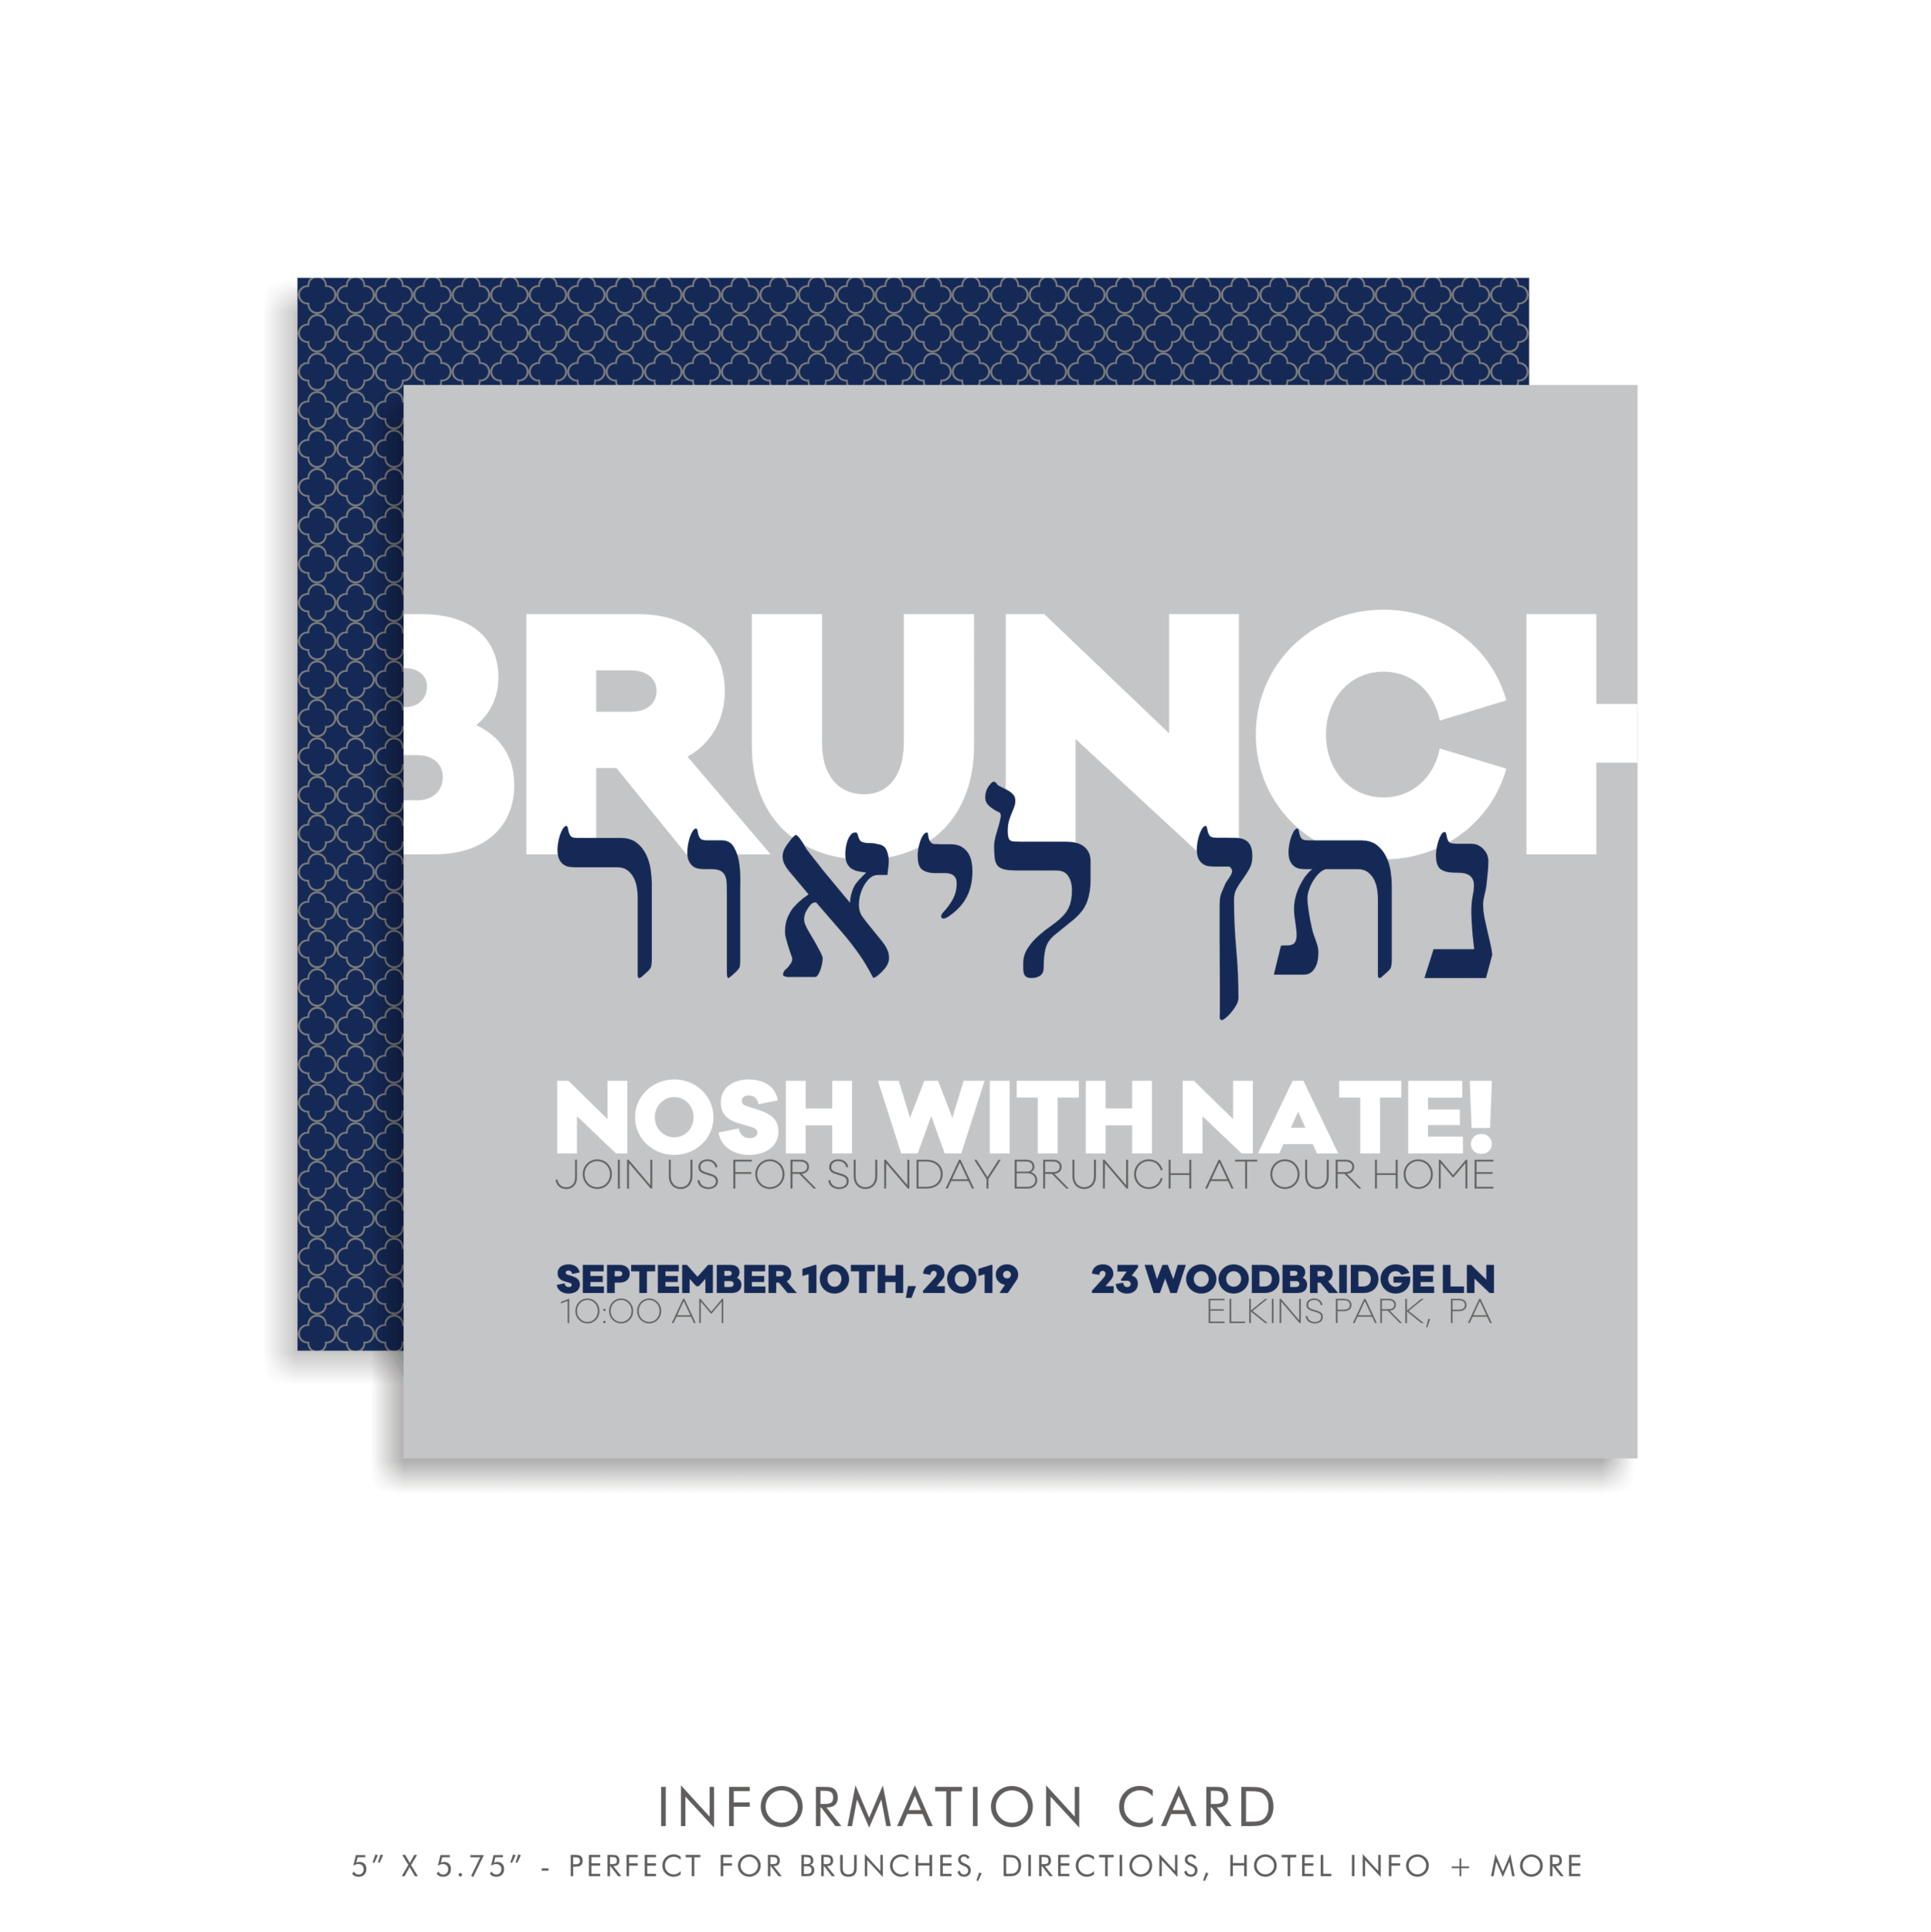 04 BAT MITZVAH INVITE SUITE 5263  INFO CARD.png